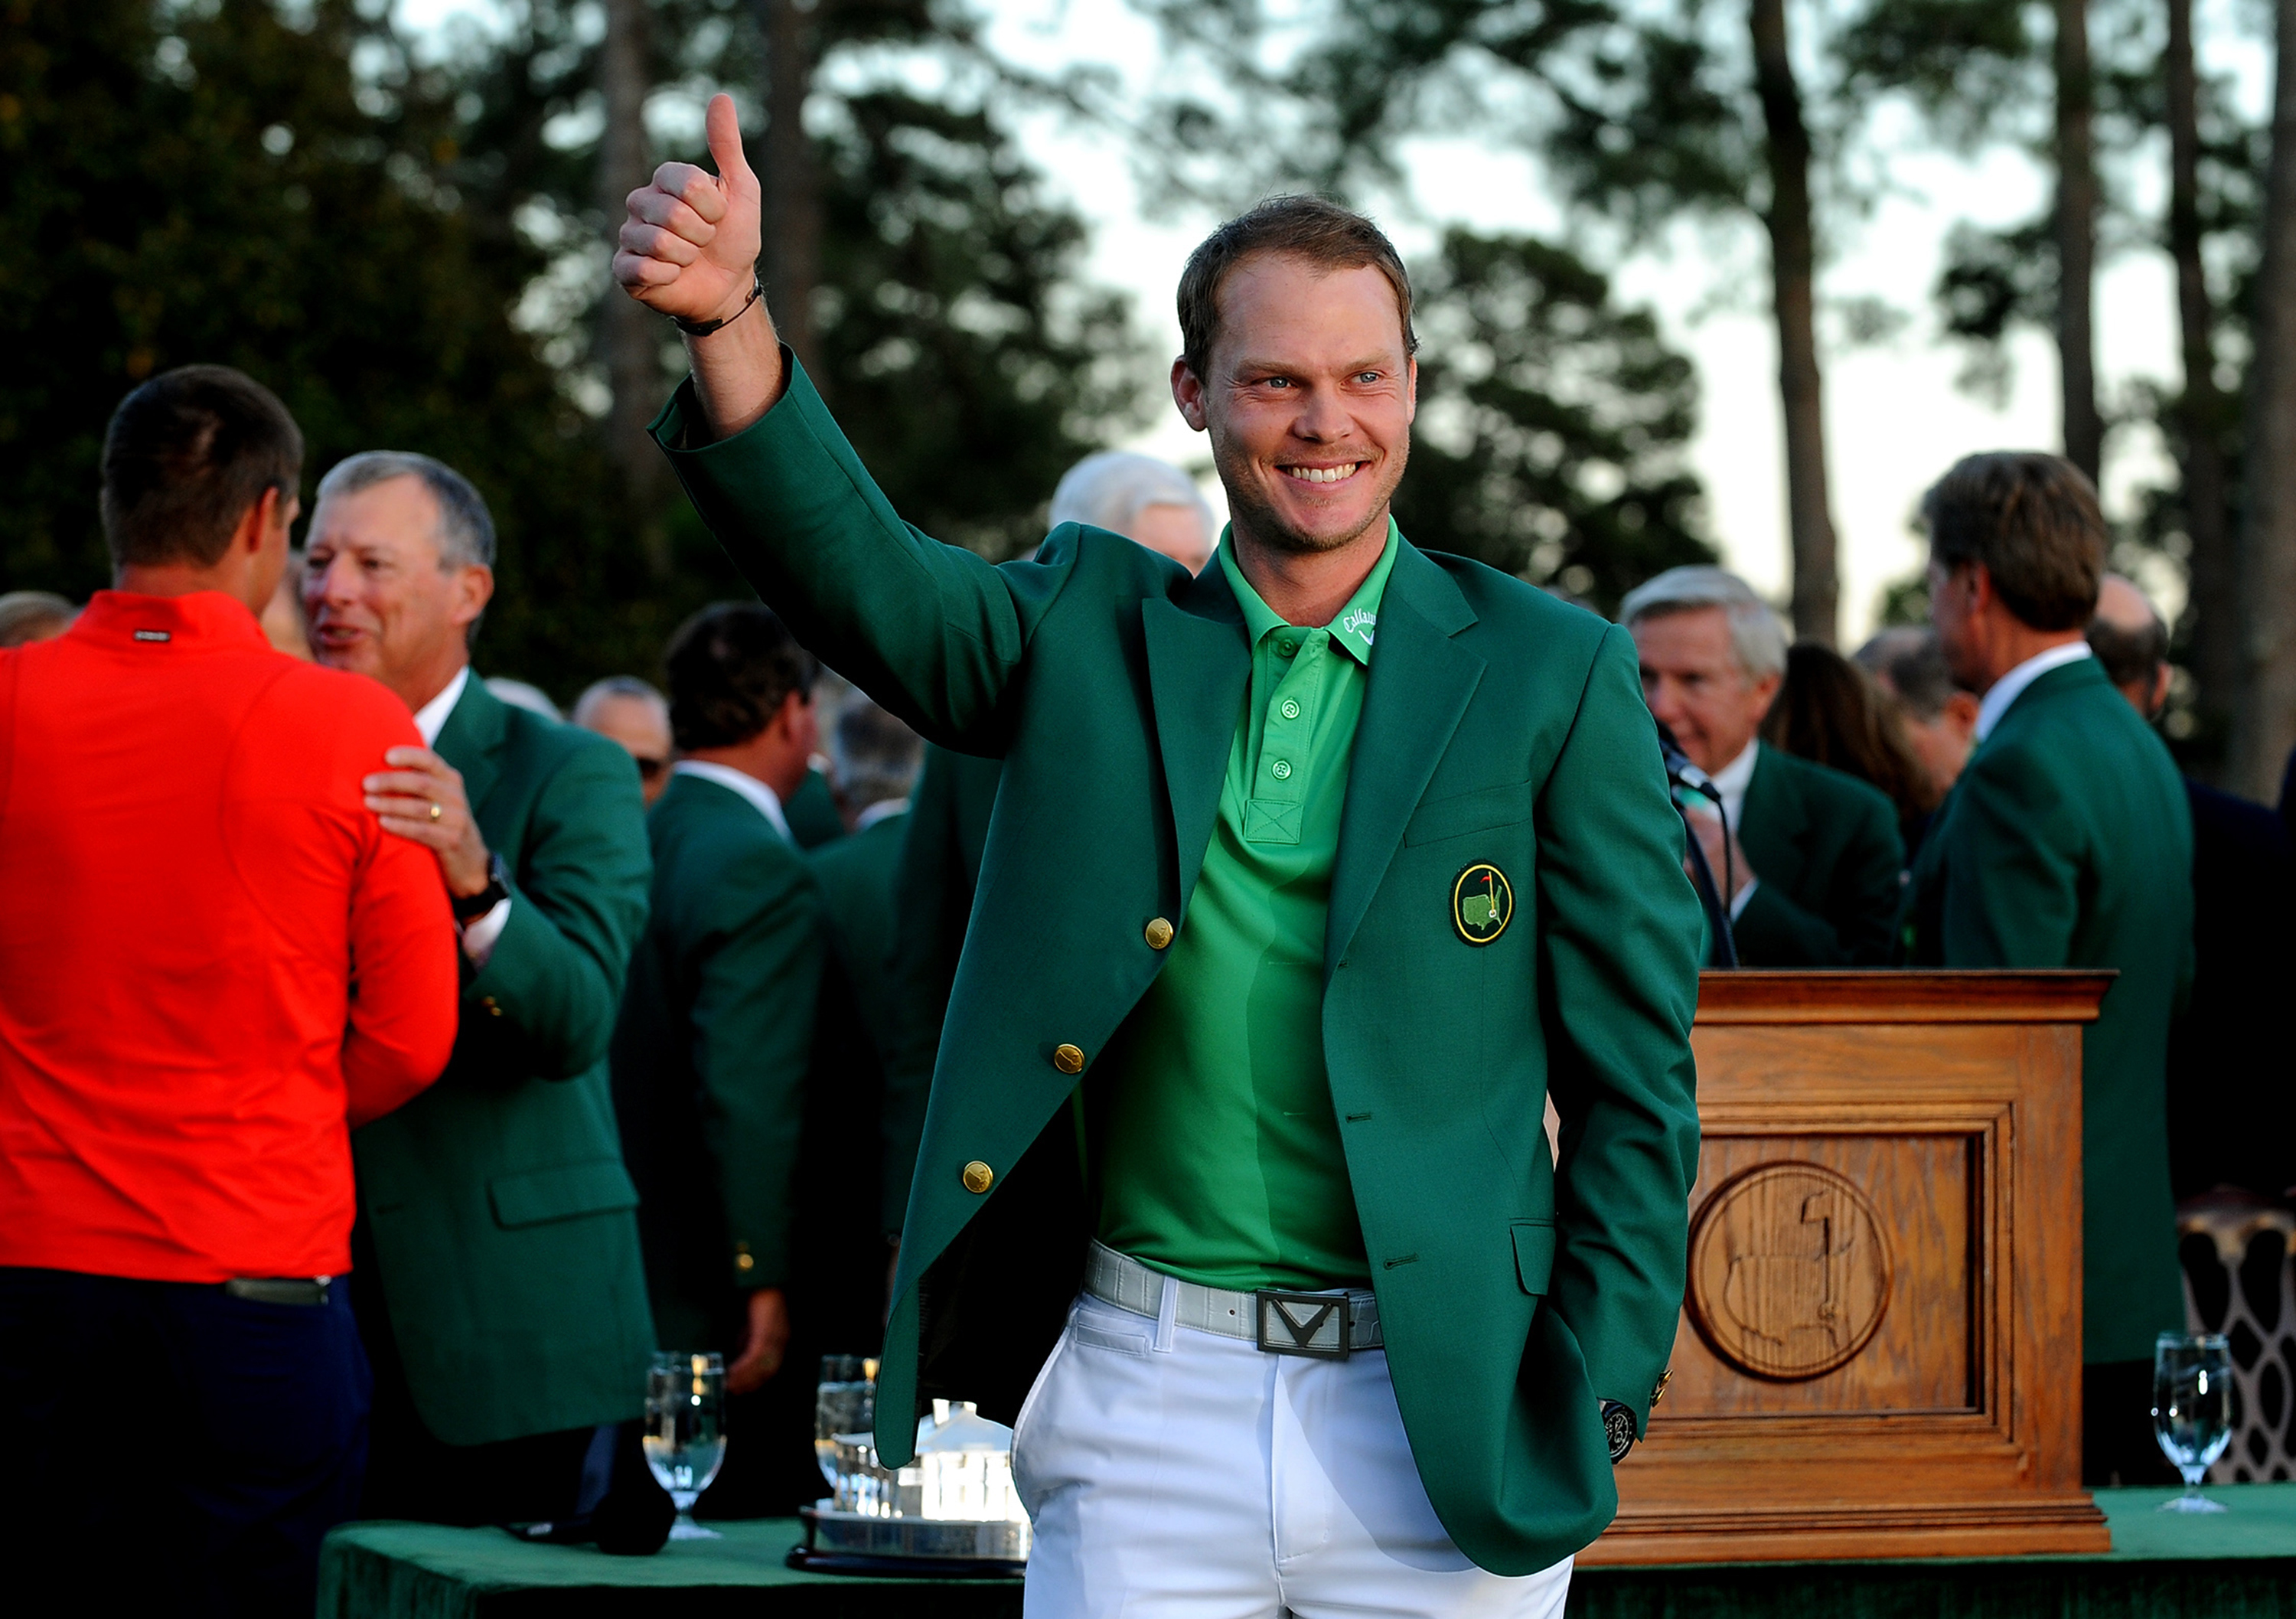 Masters champion Danny Willett smiles and gives the thumbs up after receiving his green jacket from 2015 champion Jordan Spieth on Sunday, April 10, 2016, at Augusta National Golf Club in Augusta, Ga. (Jeff Siner/Charlotte Observer/TNS via Getty Images)